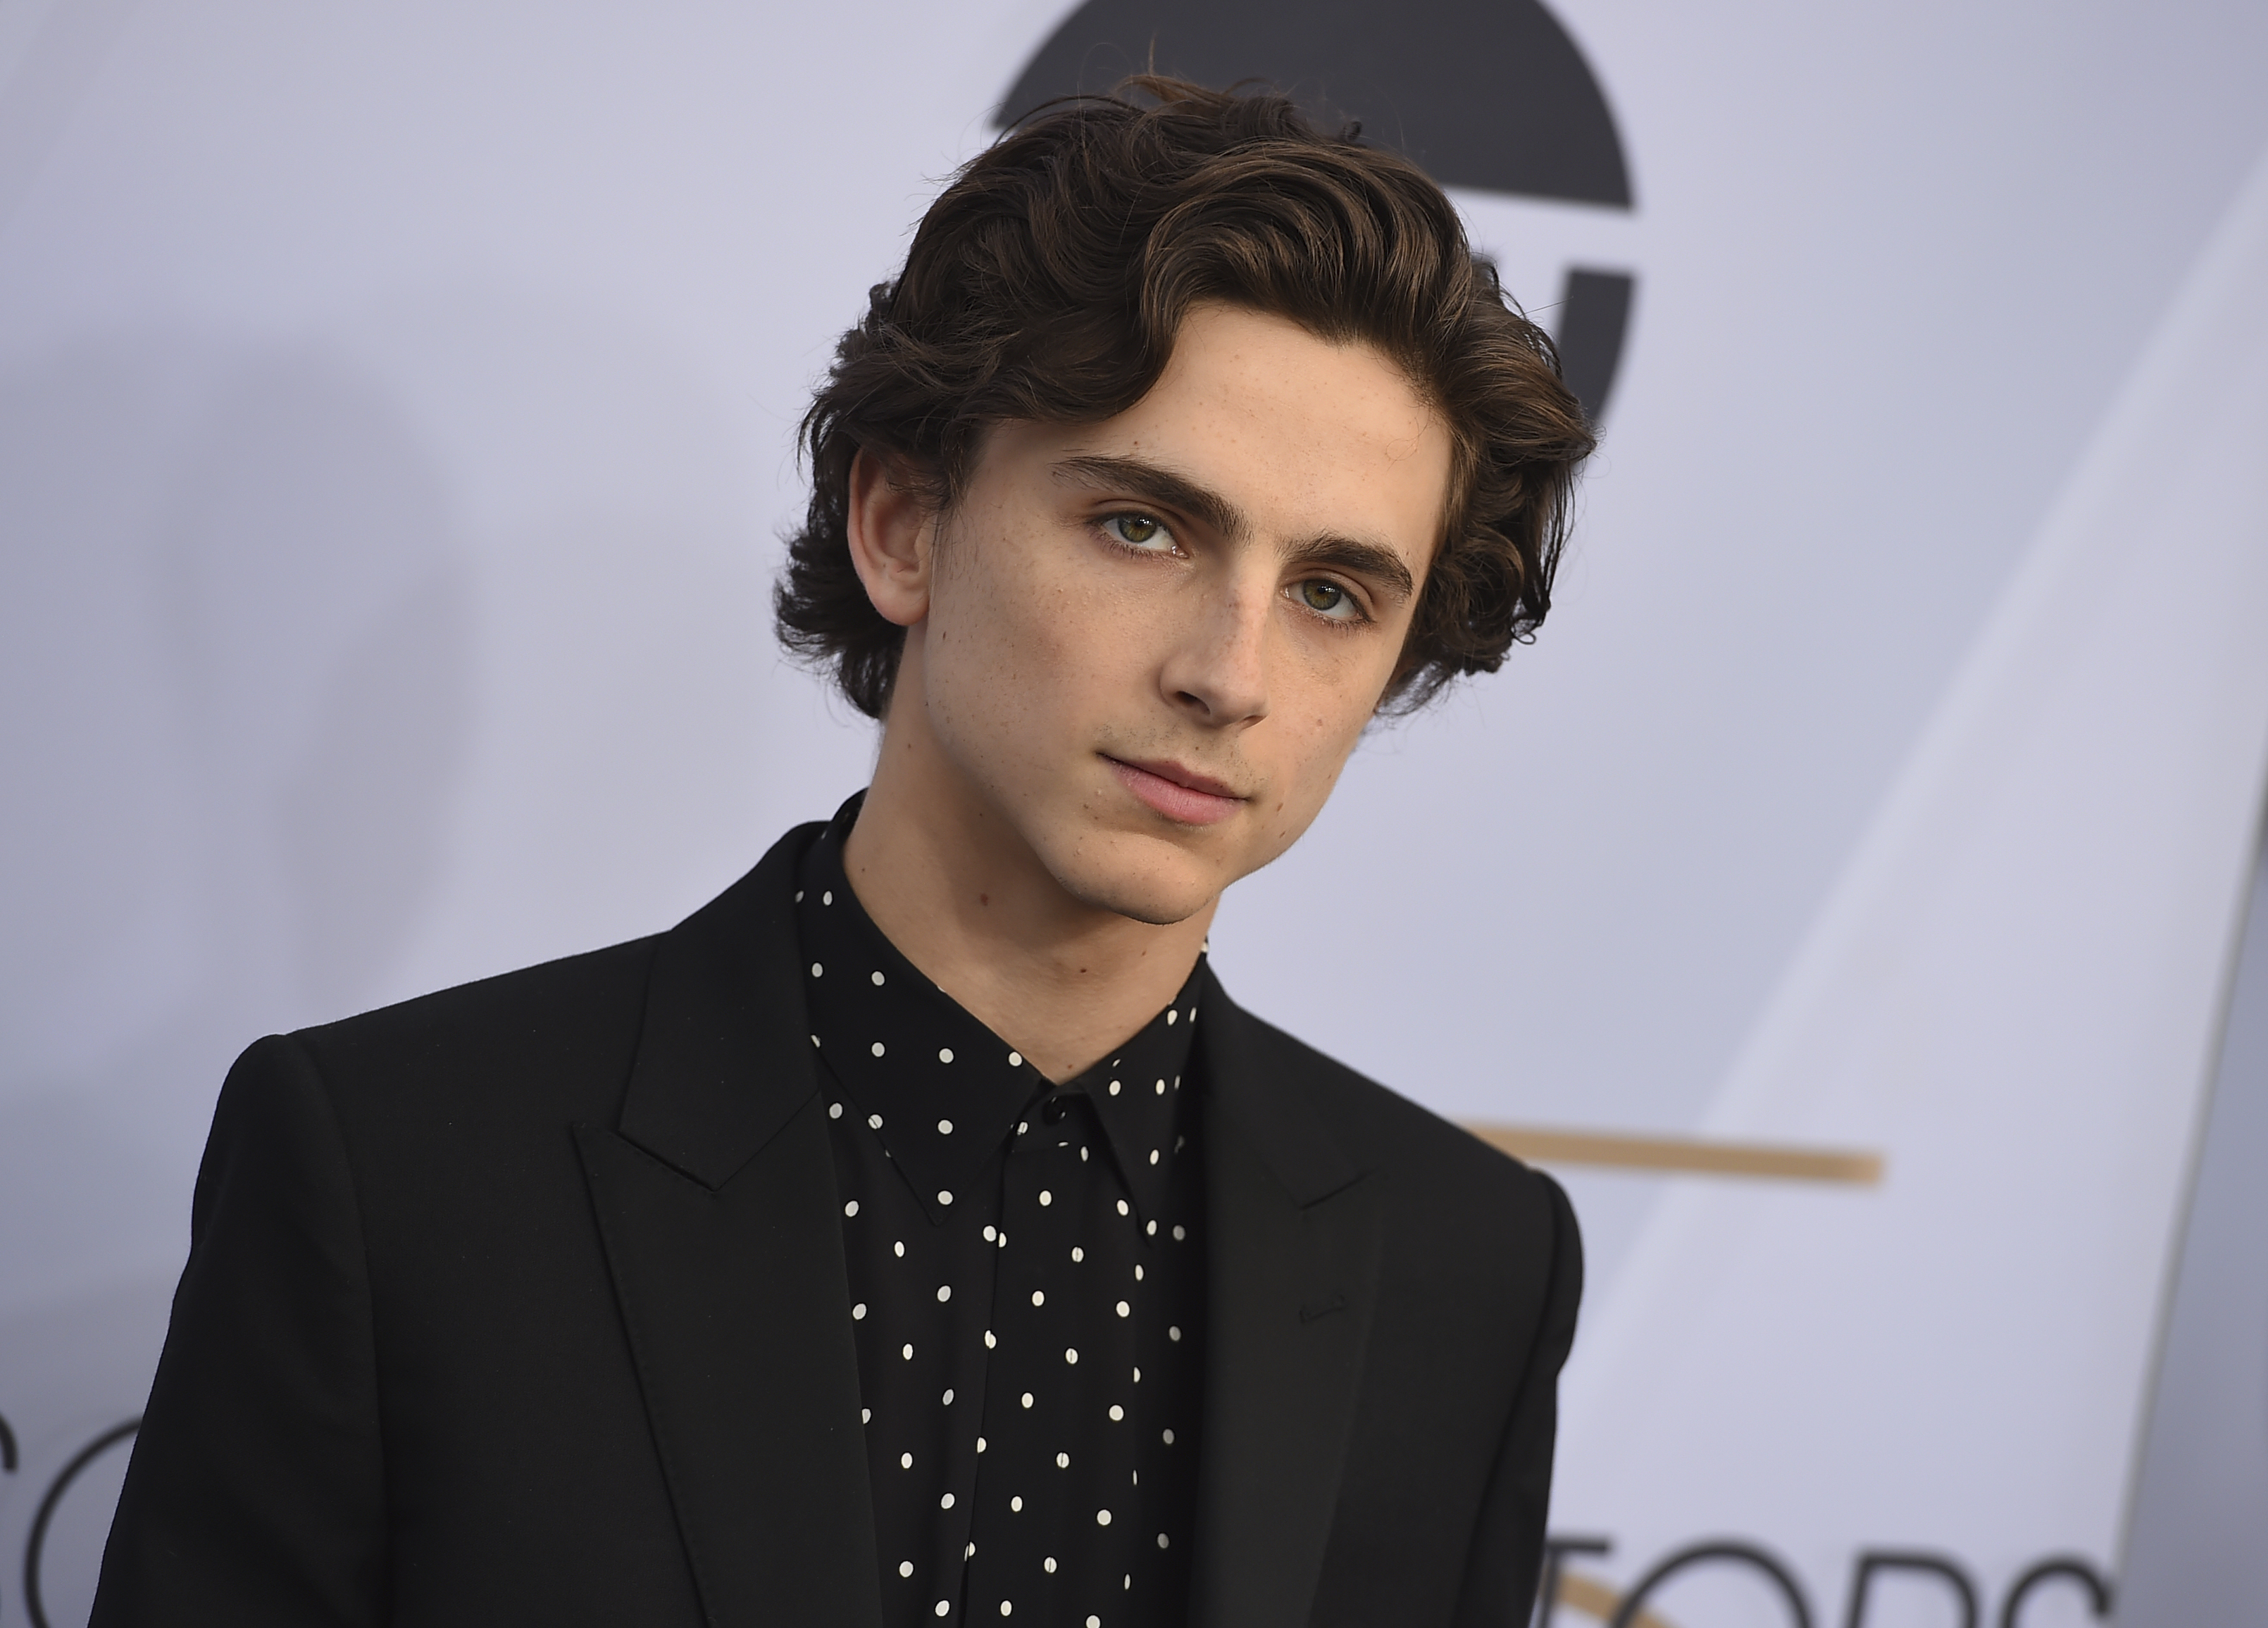 Timothee Chalamet arrives at the 25th annual Screen Actors Guild Awards at the Shrine Auditorium & Expo Hall on Sunday, Jan. 27, 2019, in Los Angeles. (Photo by Jordan Strauss/Invision/AP)